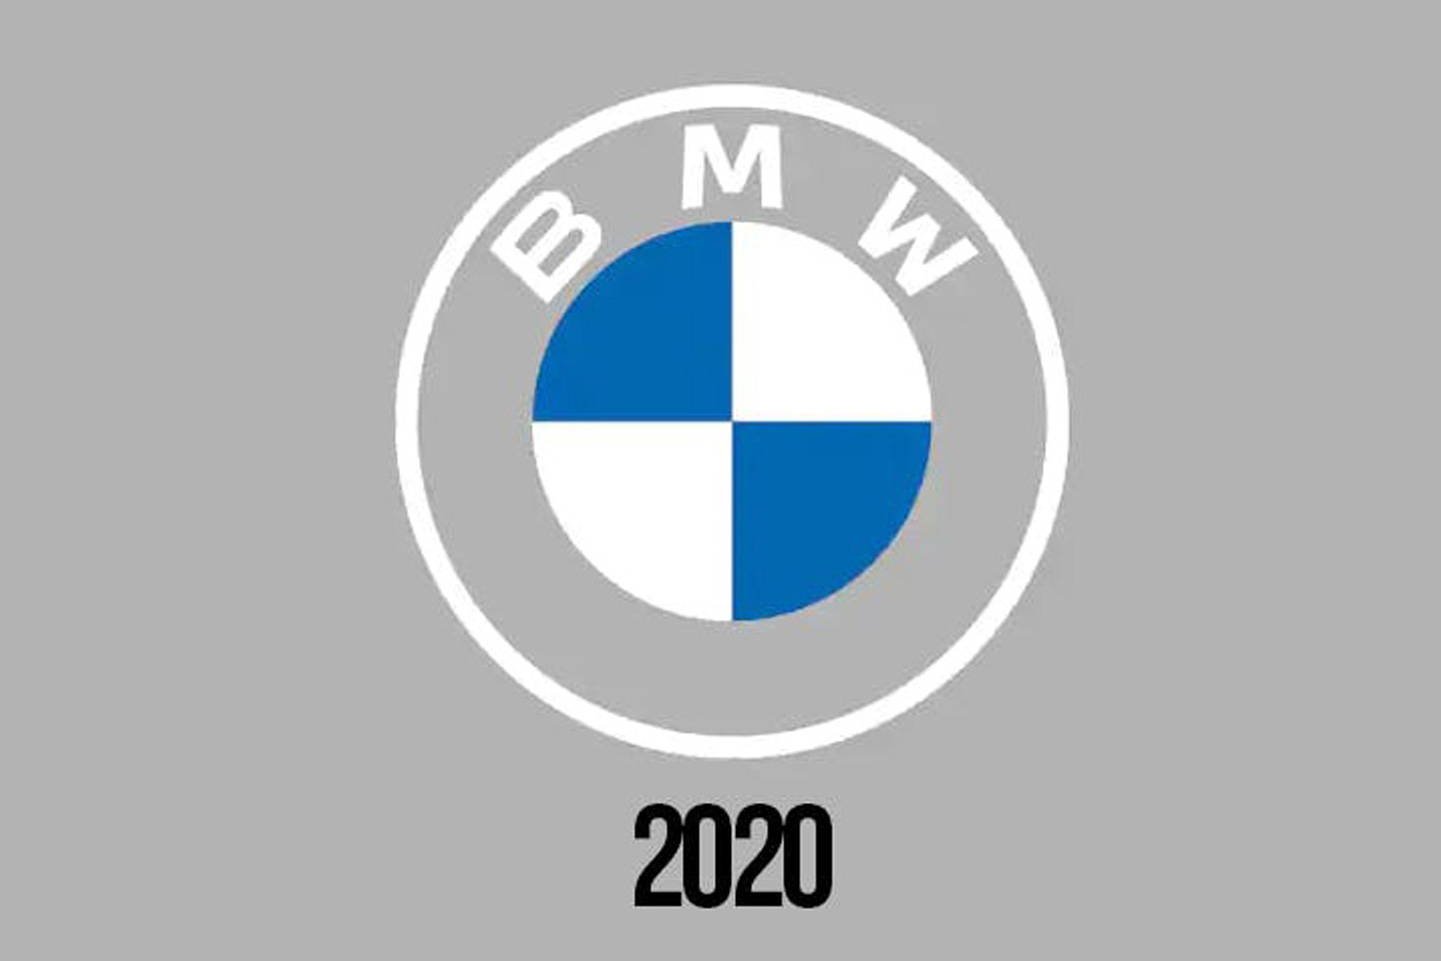 BMW's first logo change in 23 years is polarizing